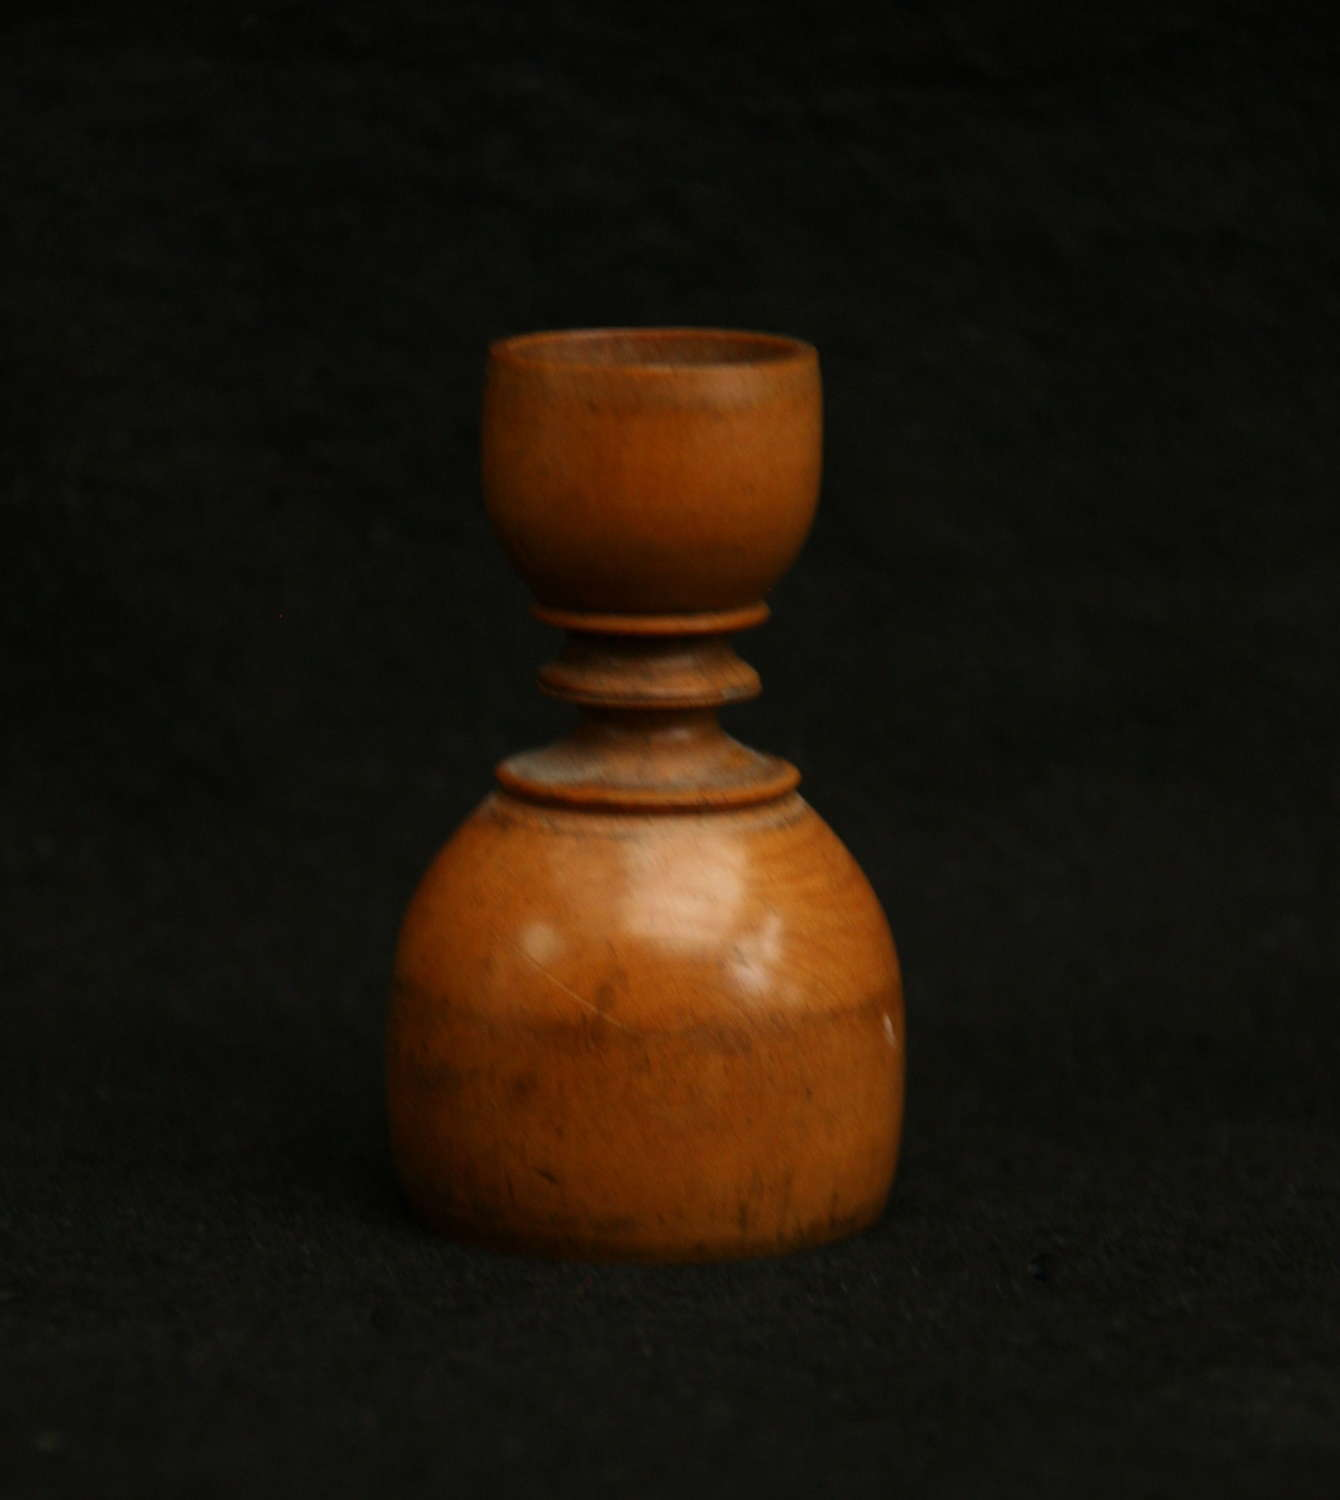 Treen Apothecary Double ended Measure 19th century